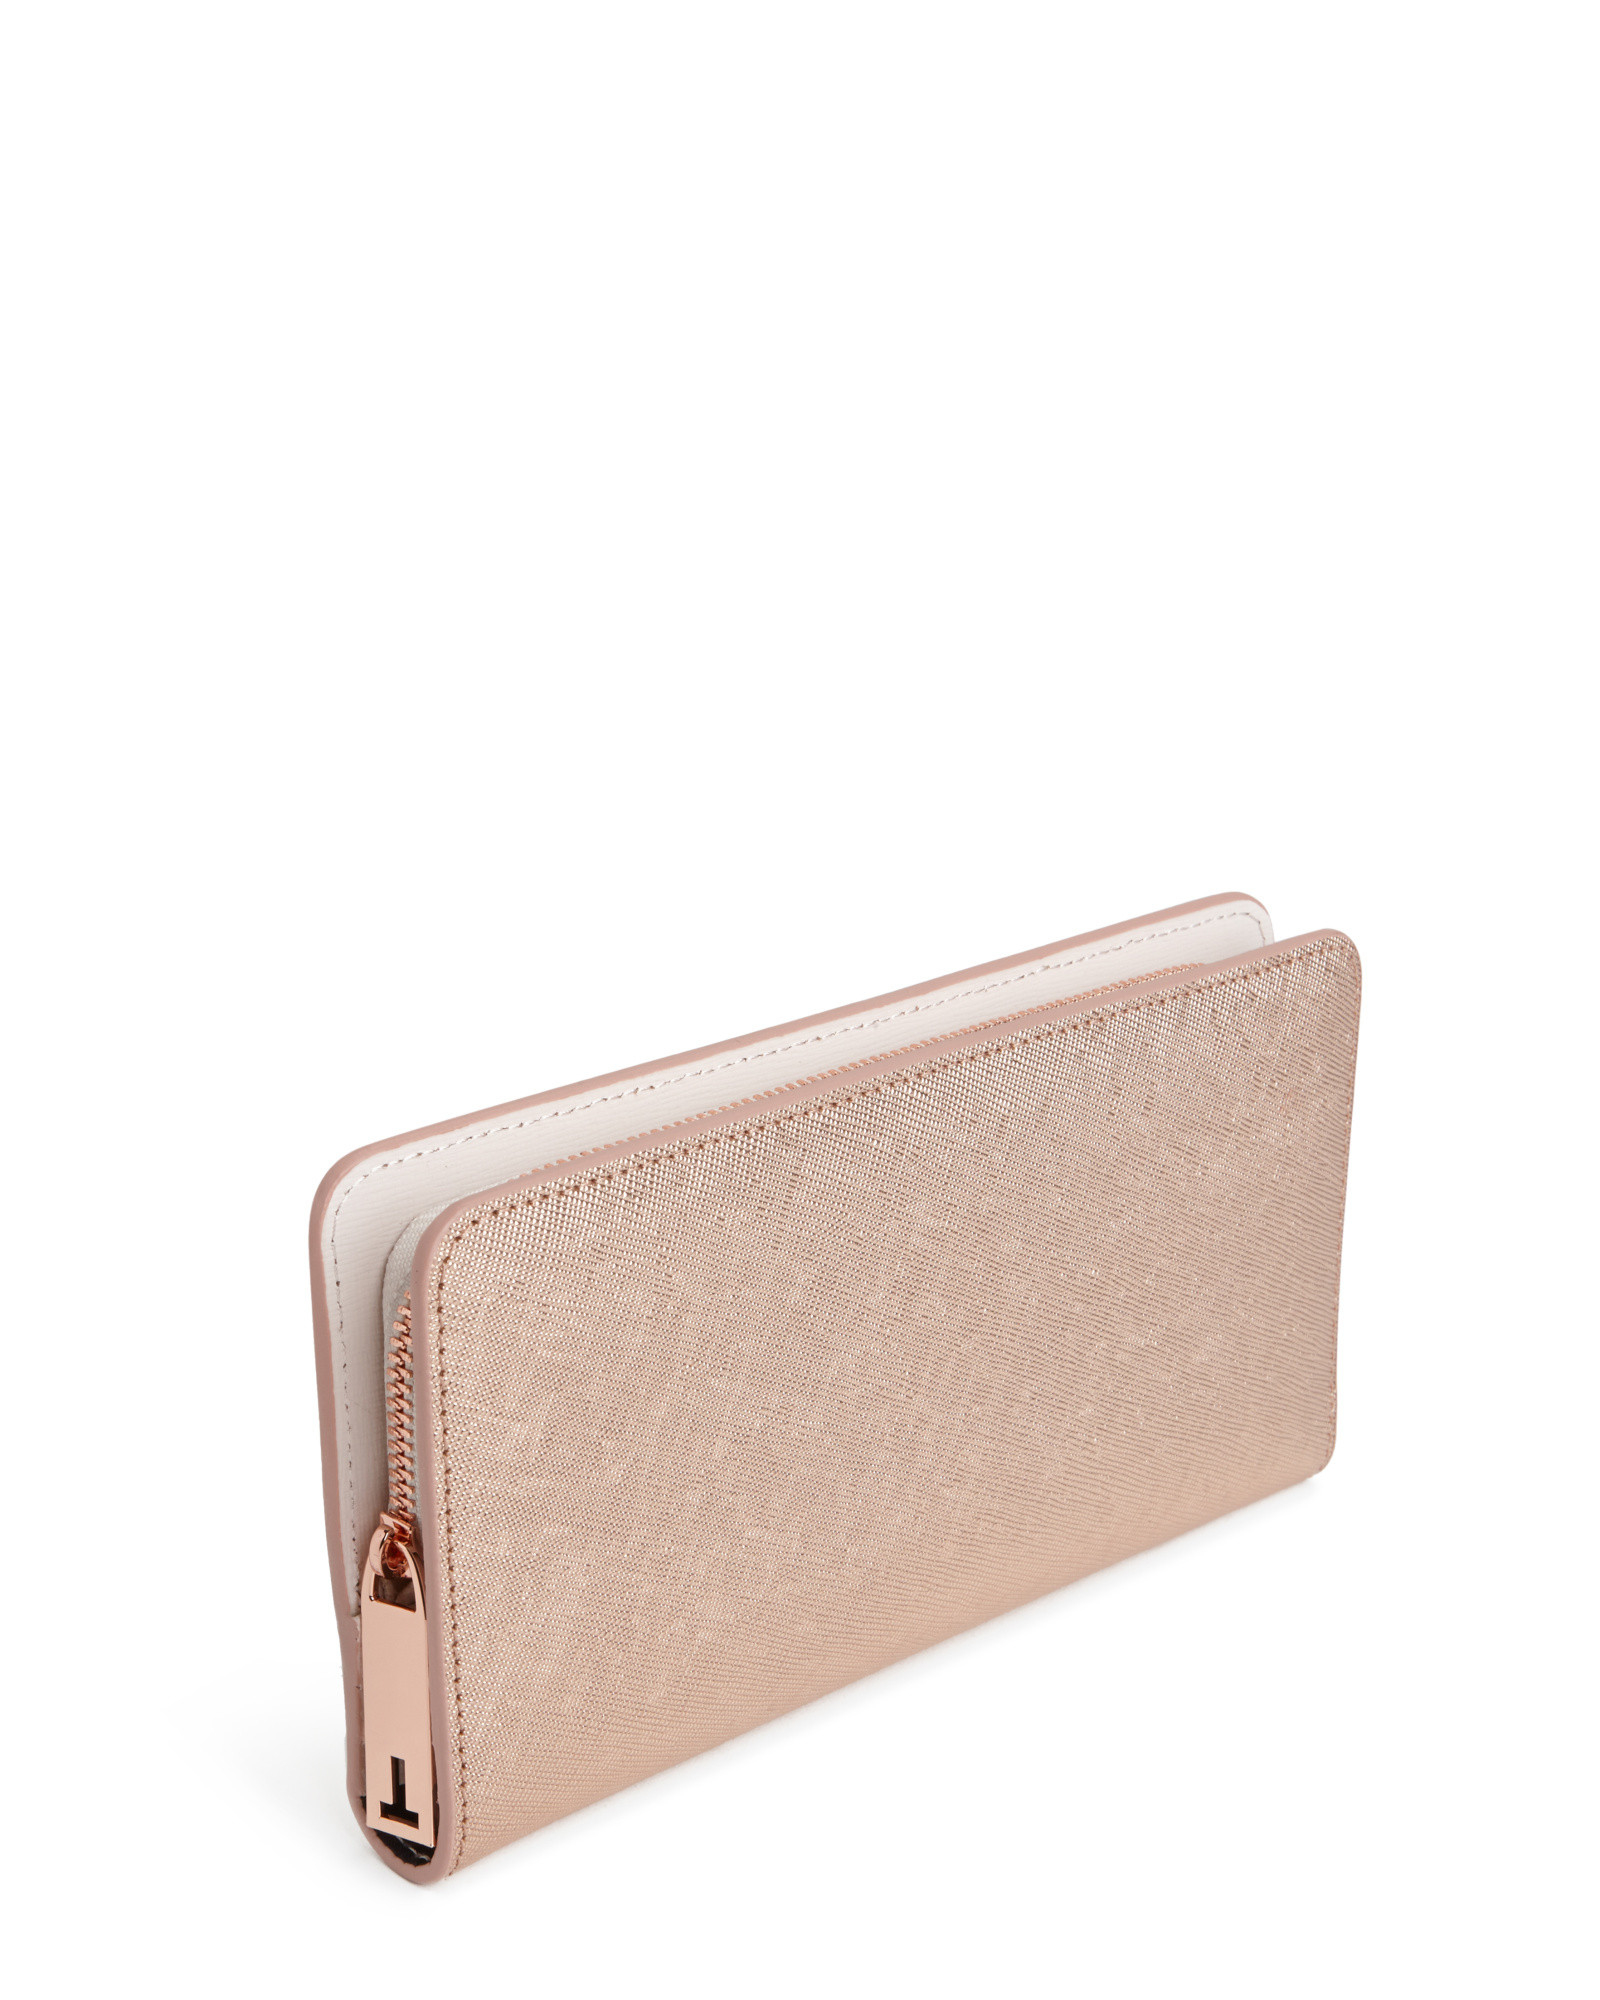 1f066bb53b7c80 Ted Baker Leather Matinee Purse In Pink Lyst. Ted Baker Womens Accessories  Marta Crystal Pearl Bobble Matinee Purse Rose Gold